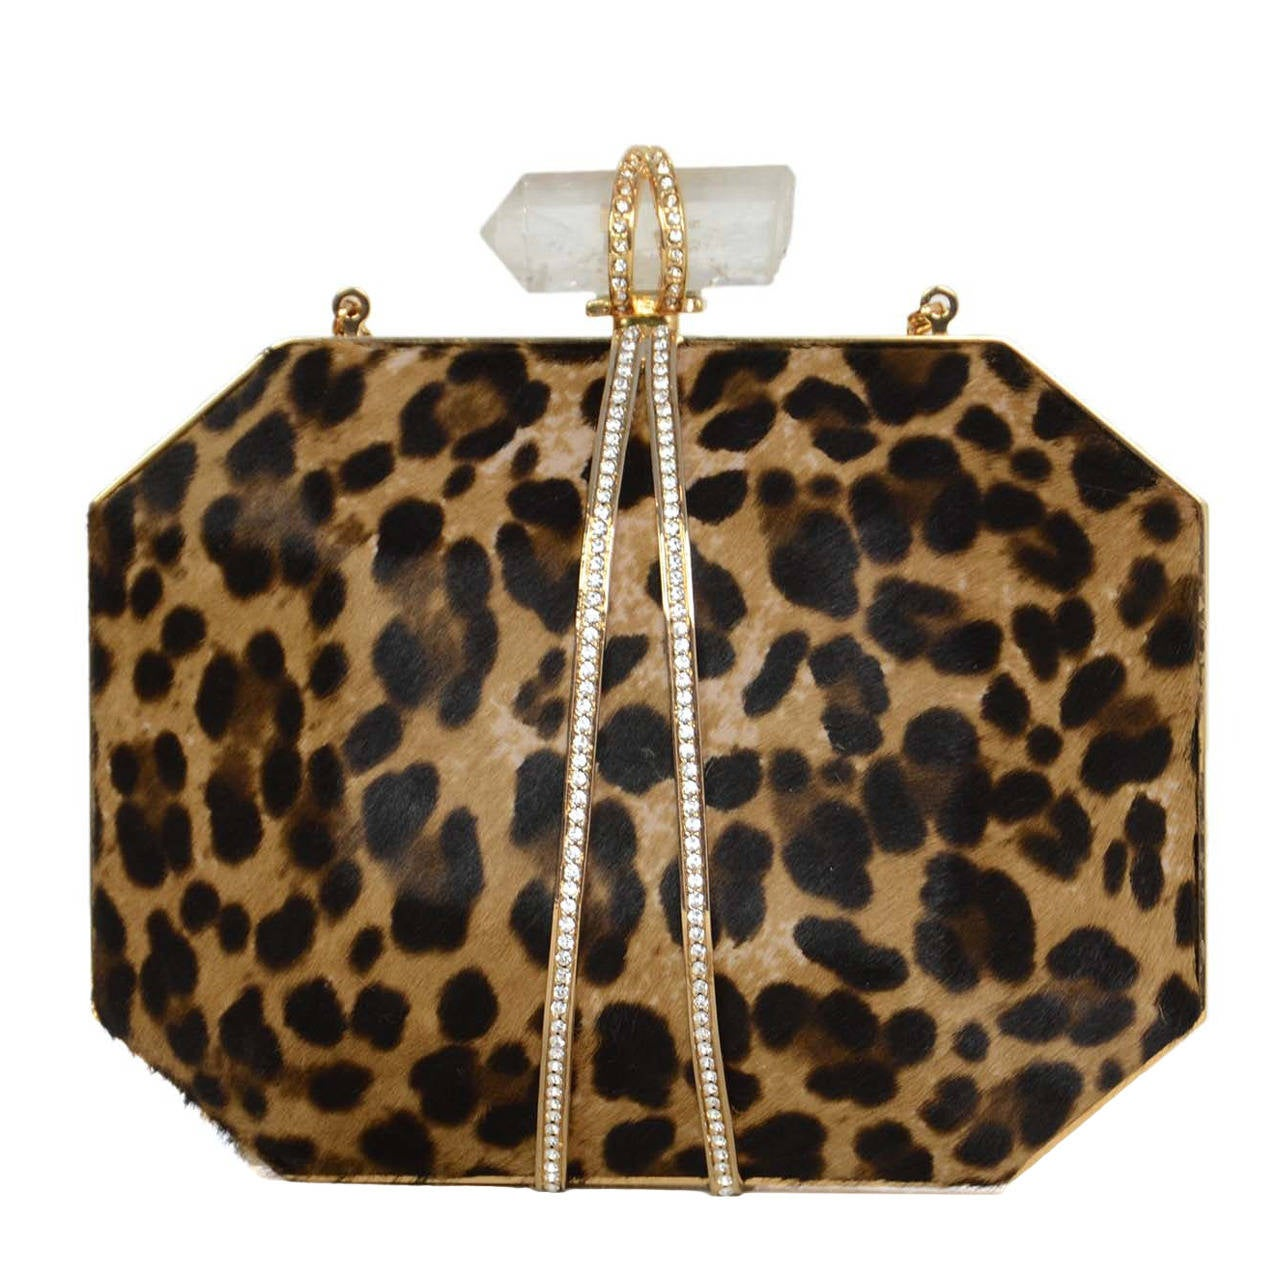 MARCHESA Iris Leopard Print Calf Hair Box Clutch rt. $1,895 For Sale